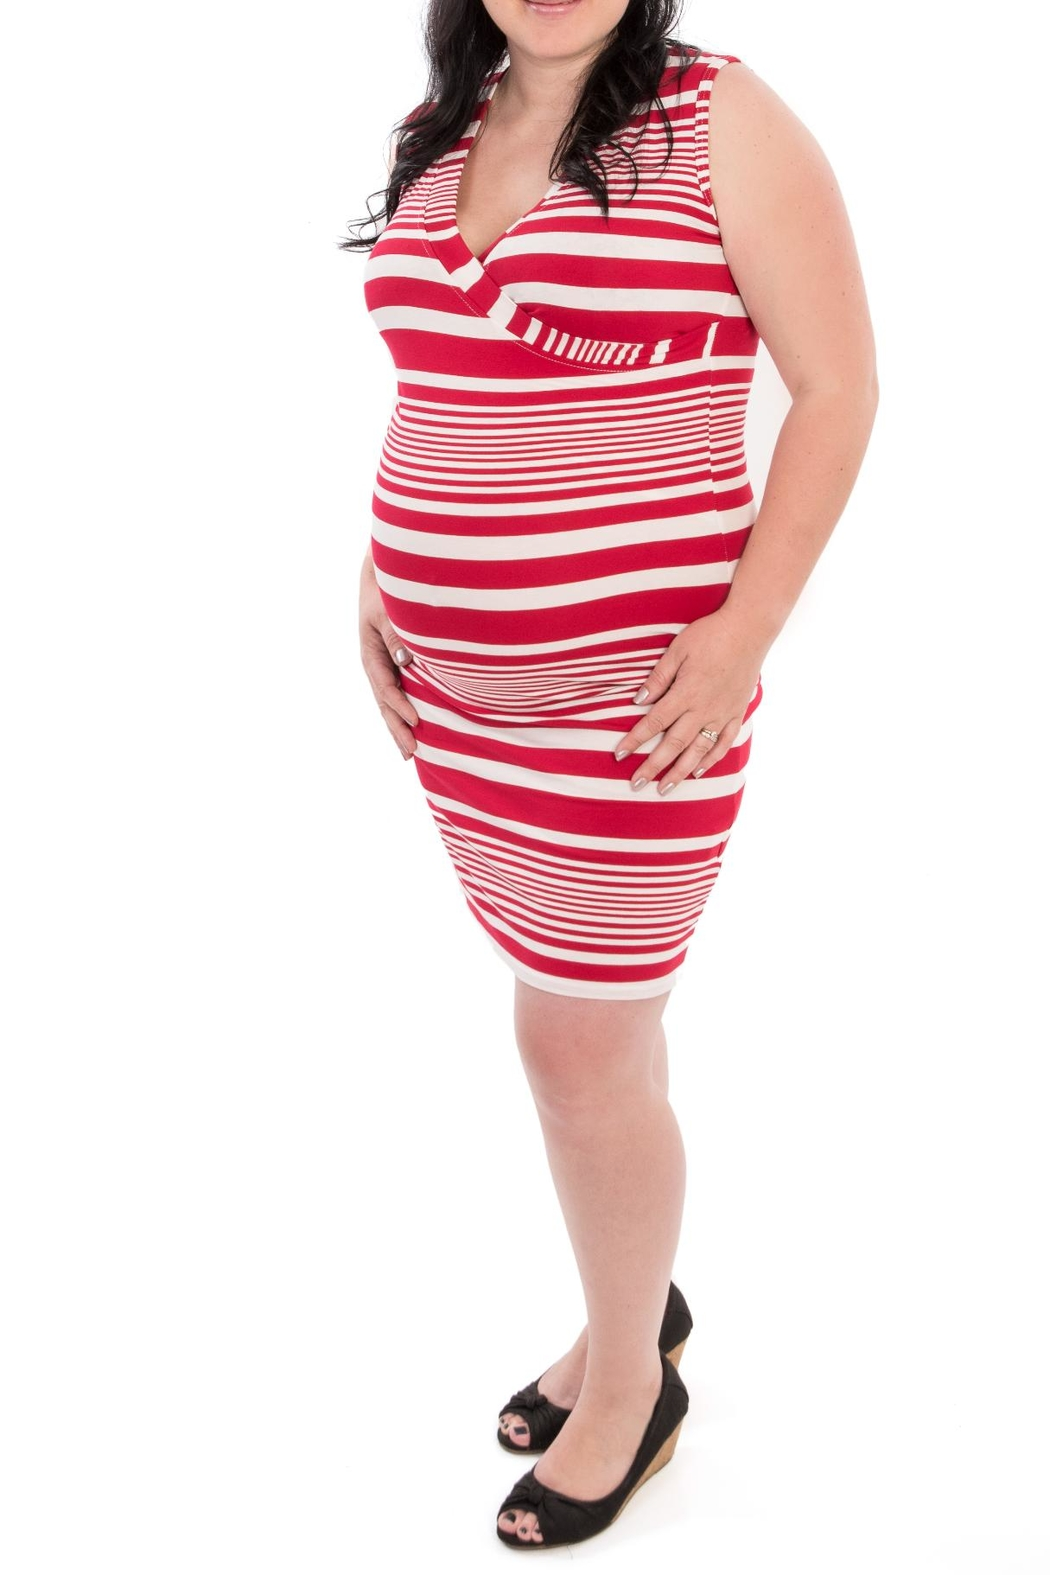 Bellybedaine Red Stripe Maternity Dress From Canada By